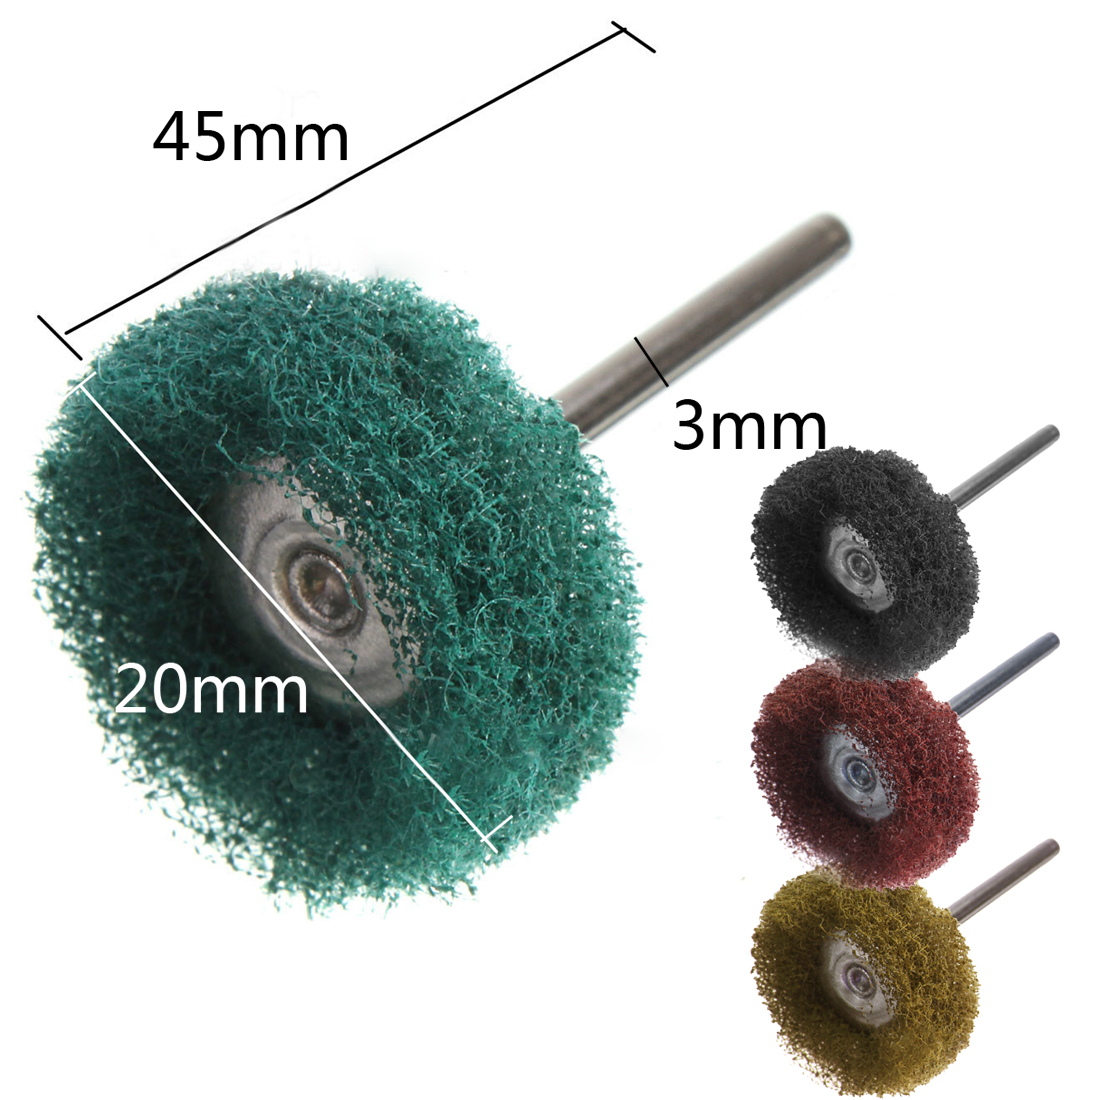 Rotary Tool Dremel Accessories 10pc Nylon Abrasive Wheel Brush With 3mm Shank For Buffing Polishing Grinding